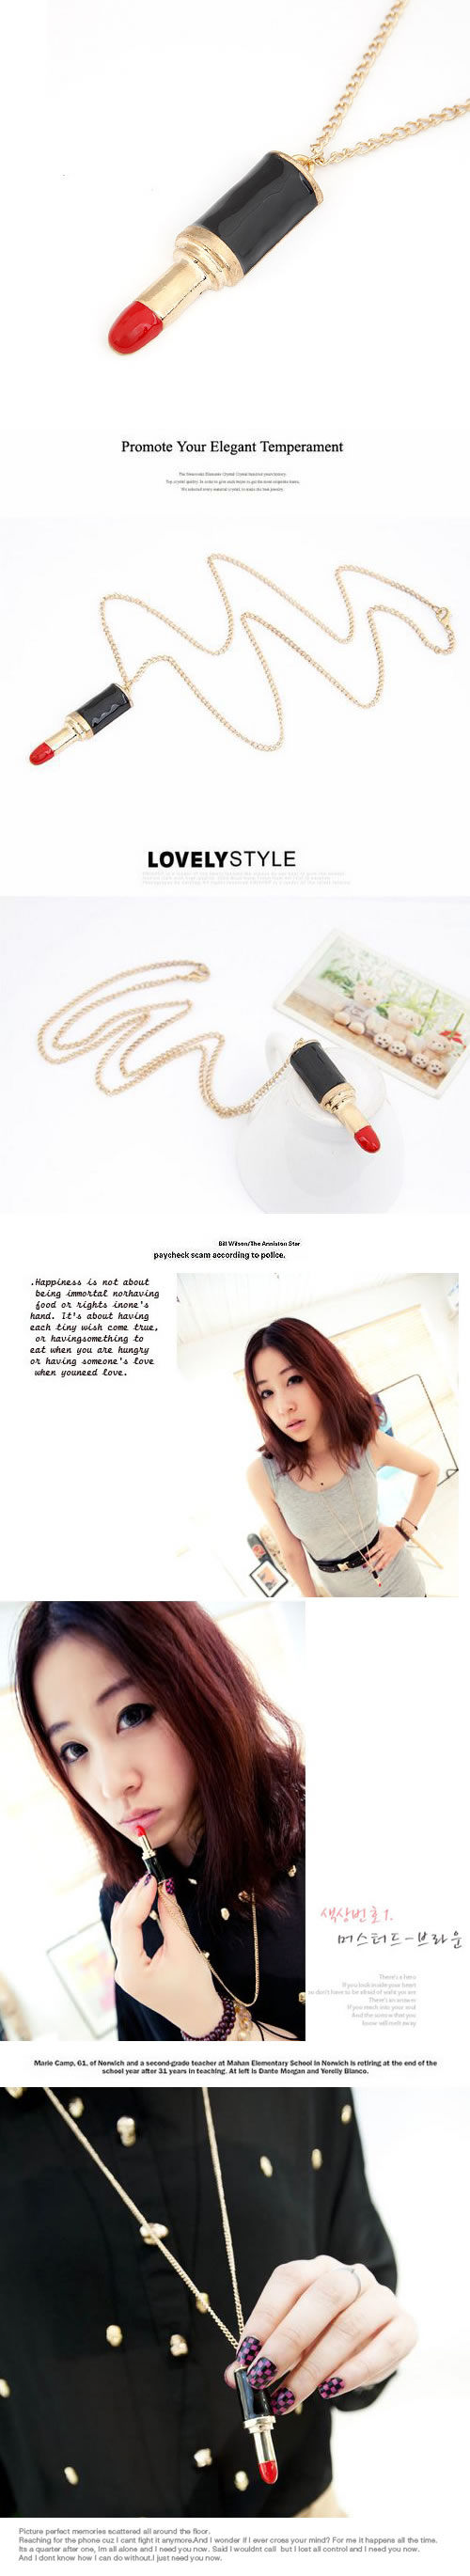 C04531sa Idr 19 K Kalung Fashion Korea Pinterest Love Happiness